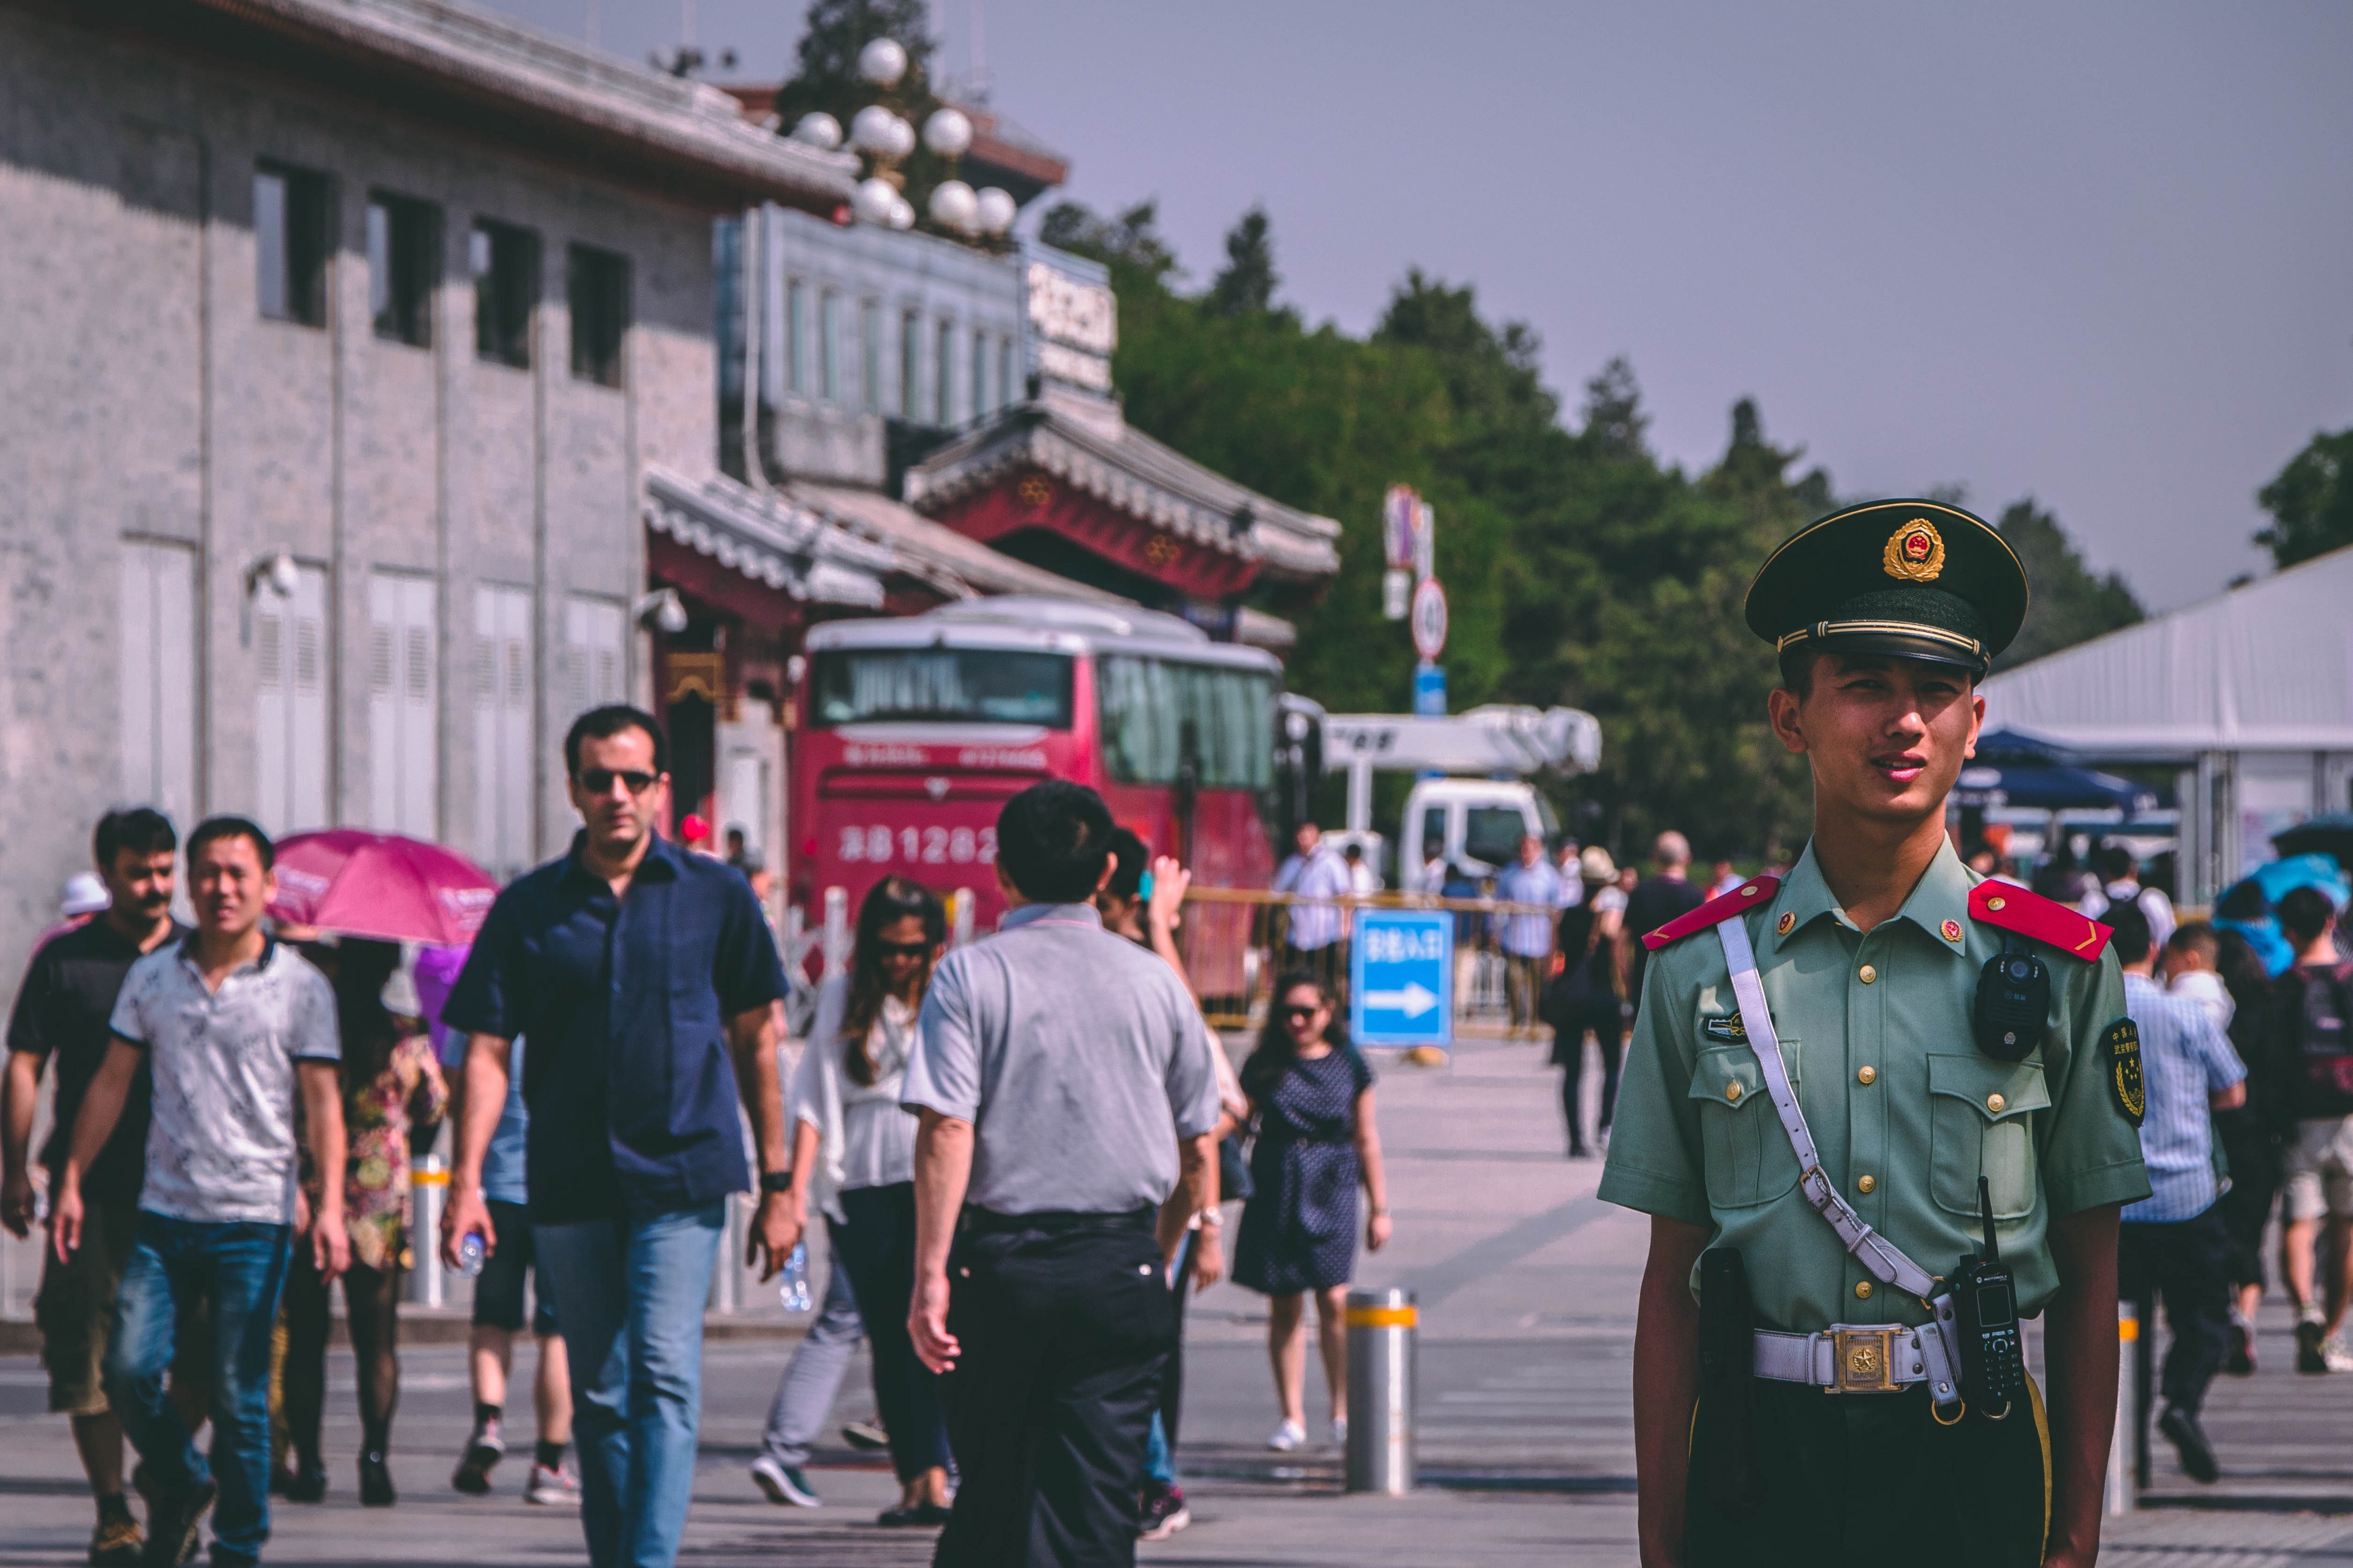 A chinese police officer standing in front of people walking past in front of a grey building with a red coach alongside